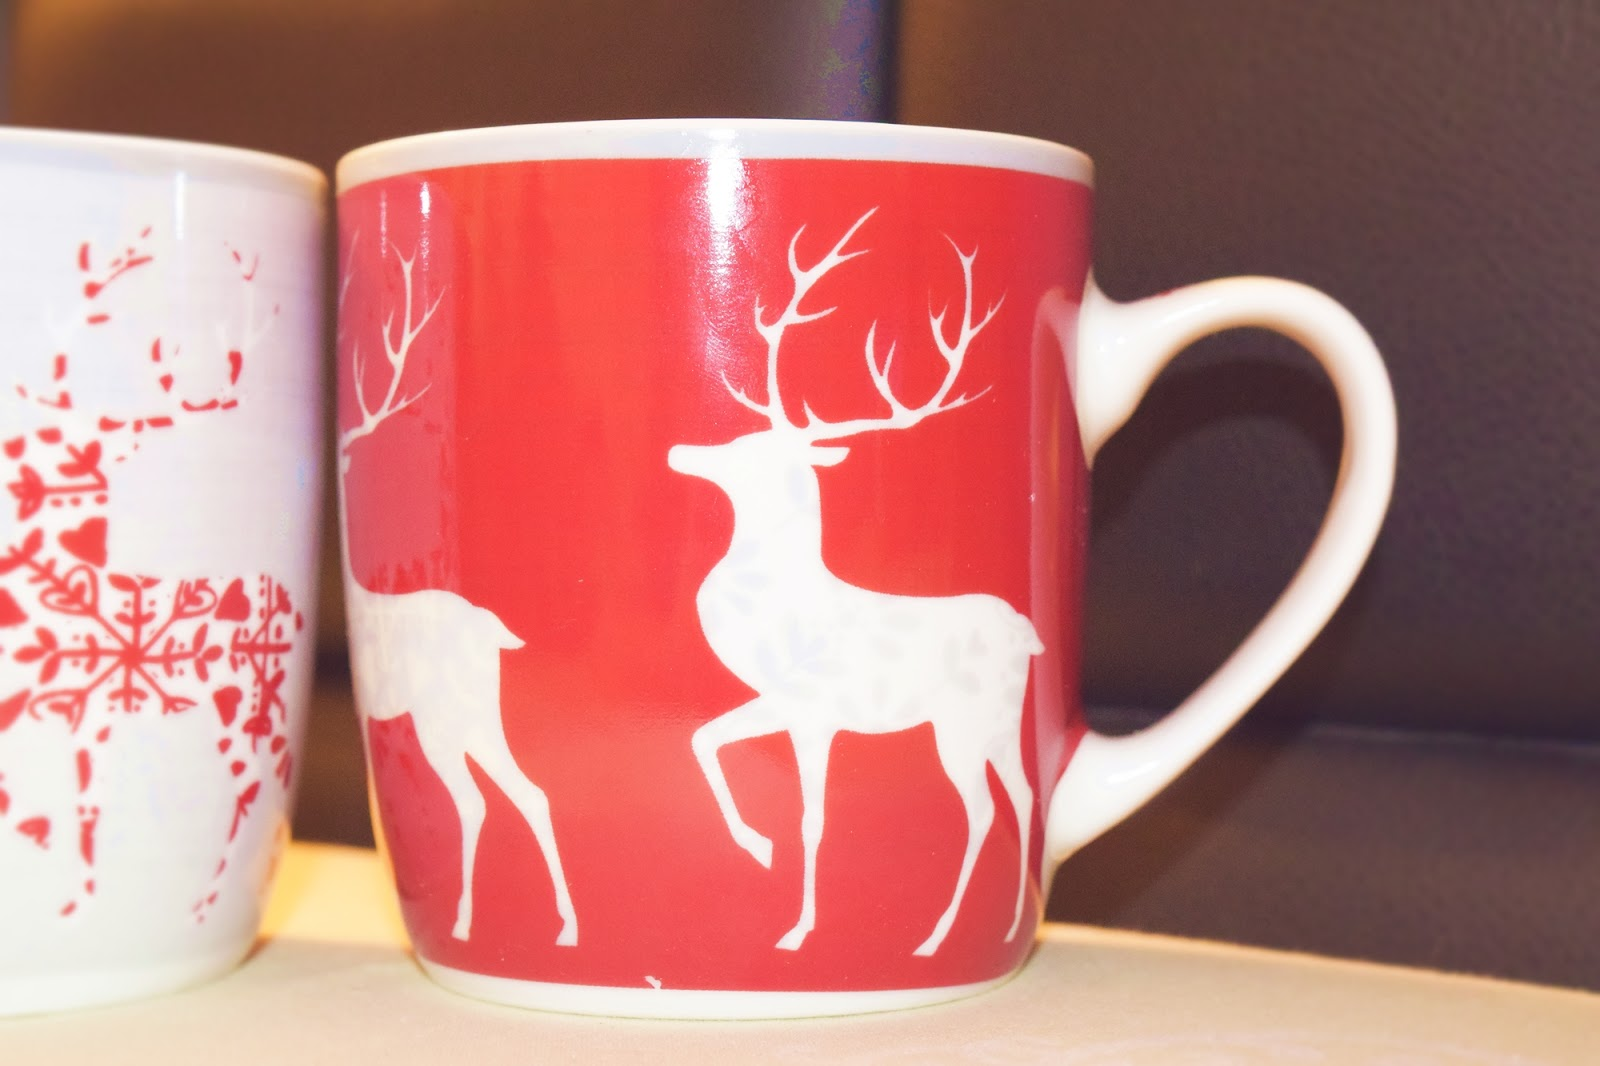 Set of 2 Reindeer Mugs from next.uk